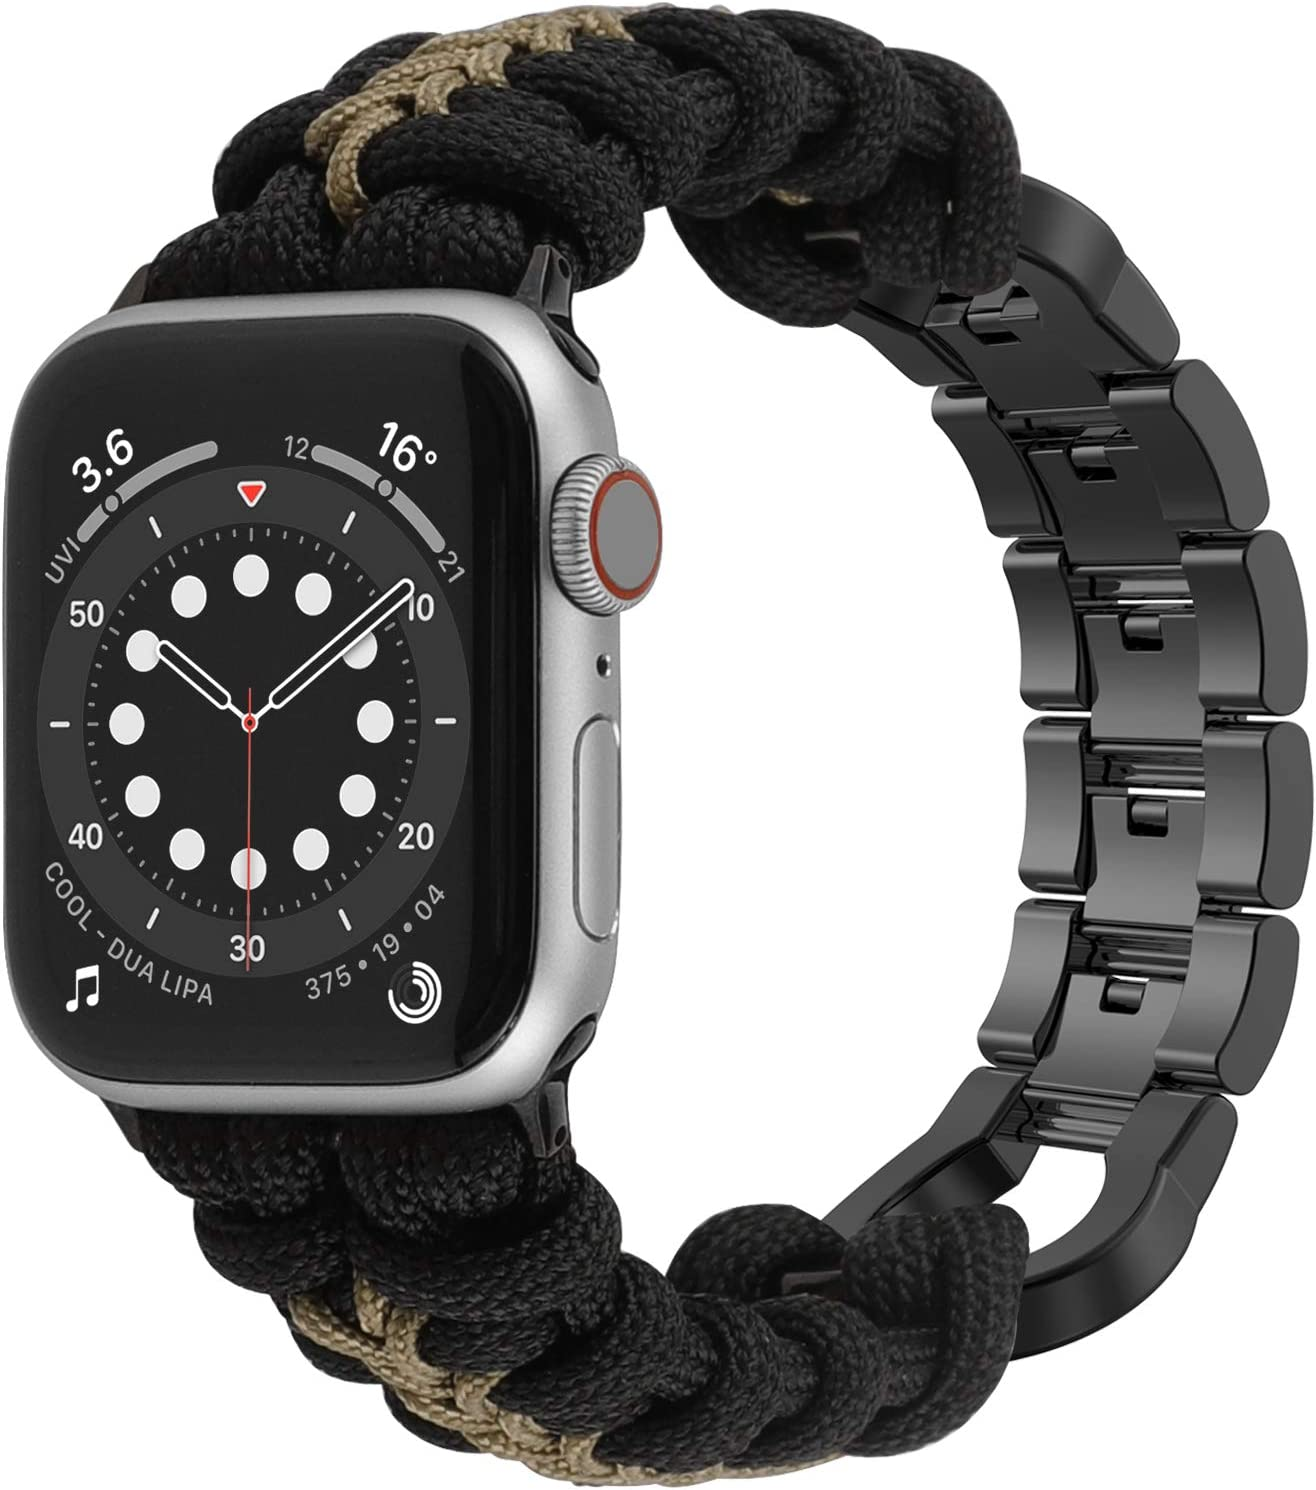 Moolia Paracord Band Compatible With Apple Watch 38mm 40mm for iWatch Series 6 5 4 3 2 1 SE, Men Handcrafted Braided Paracord Sport Replacement Strap With Stainless Steel Buckle, Black + Green